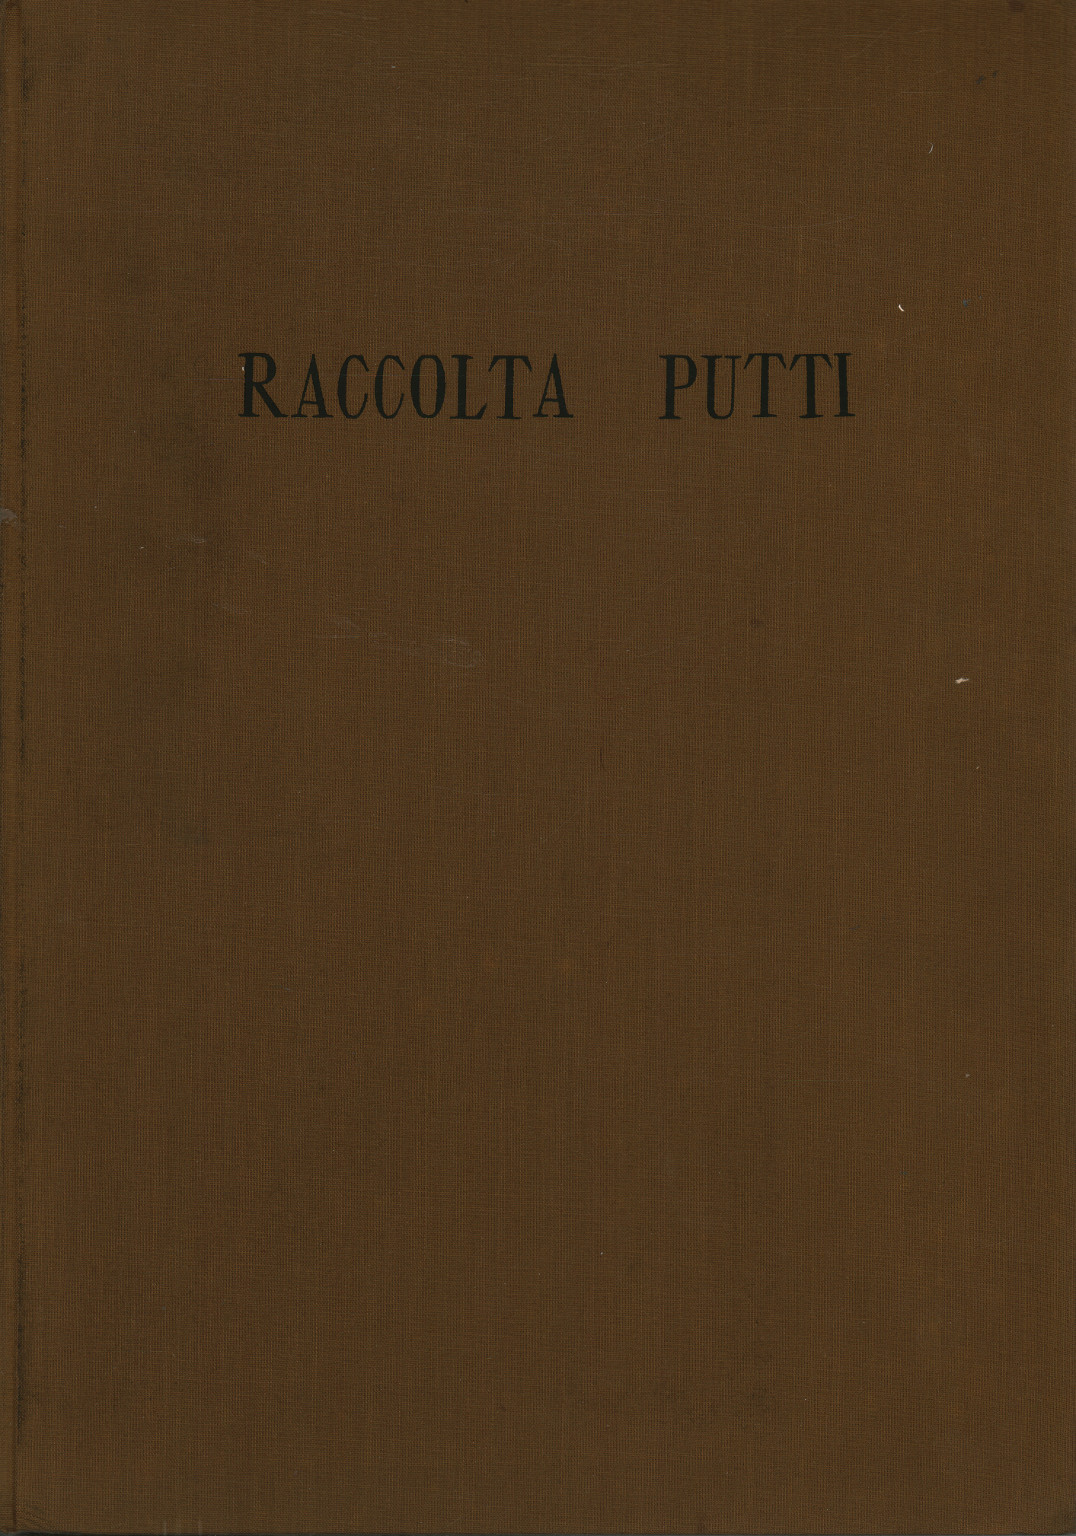 Catalogue de la collection de Vittorio de Putti, s.un.